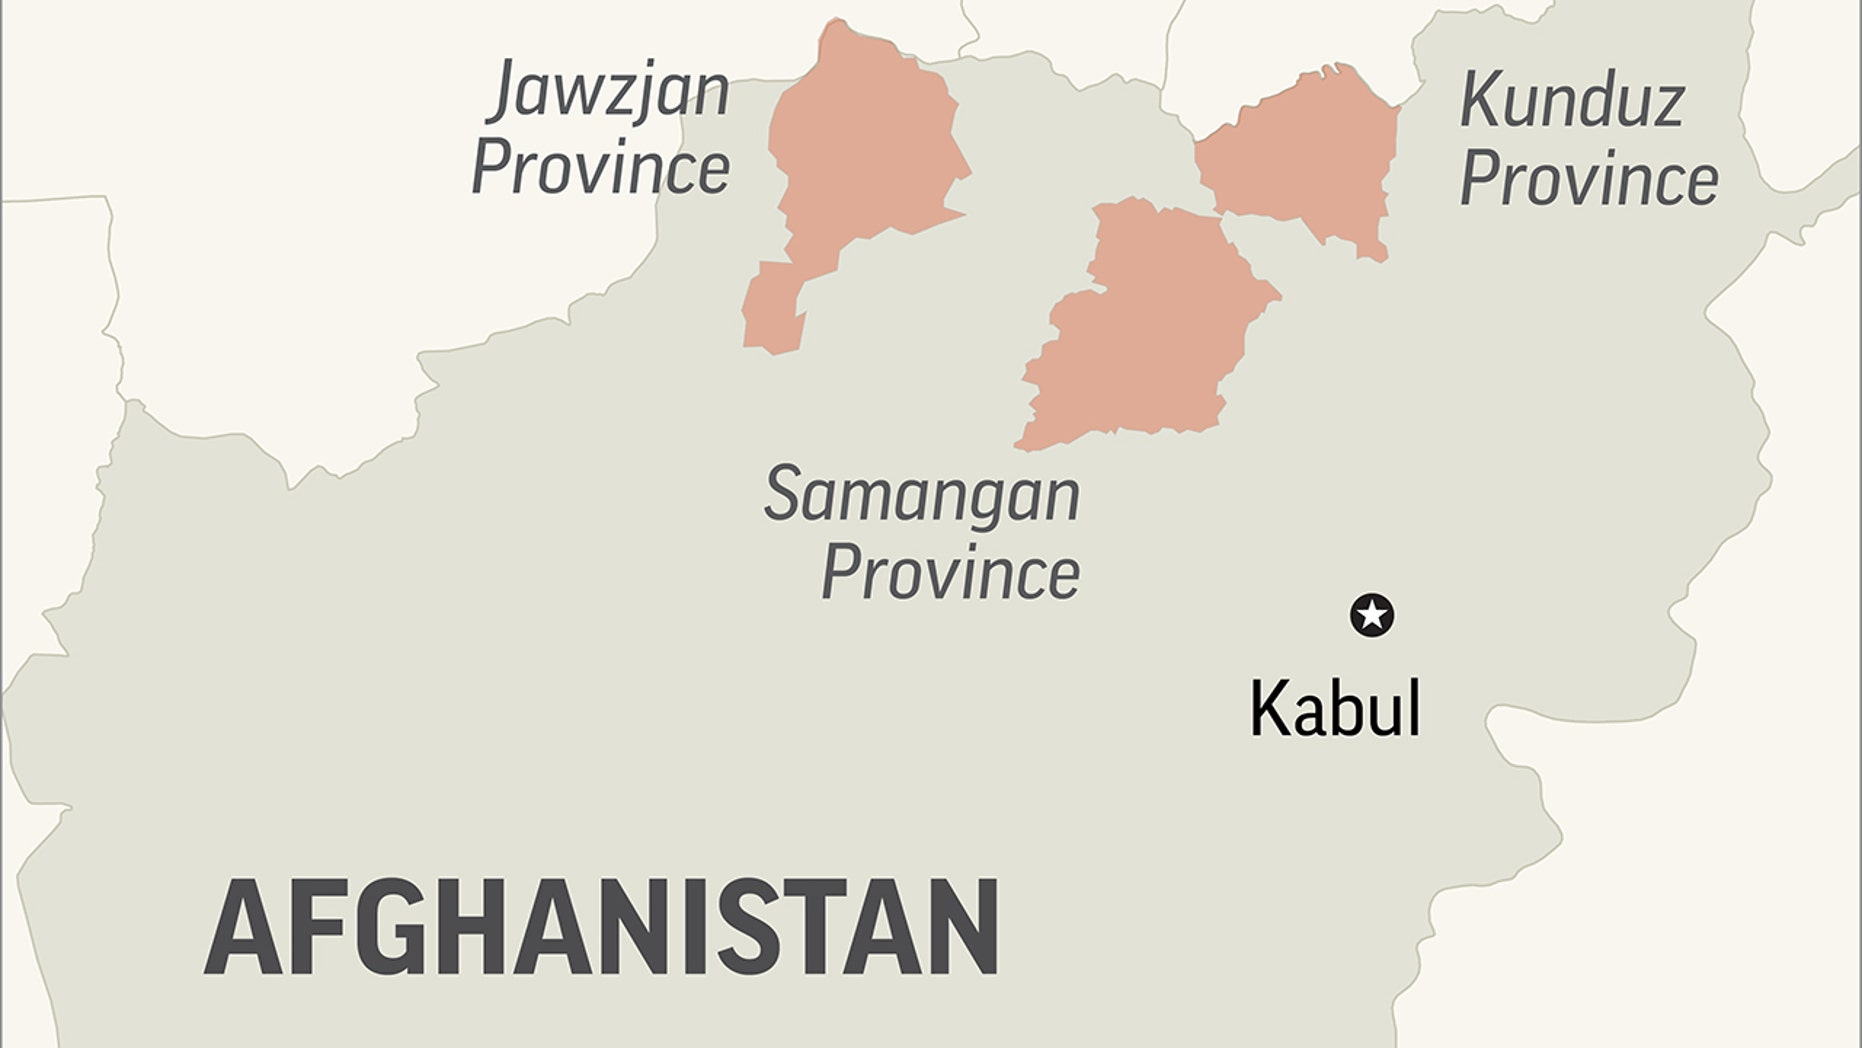 Taliban kill 52 in separate attacks on Afghan security forces | Fox News